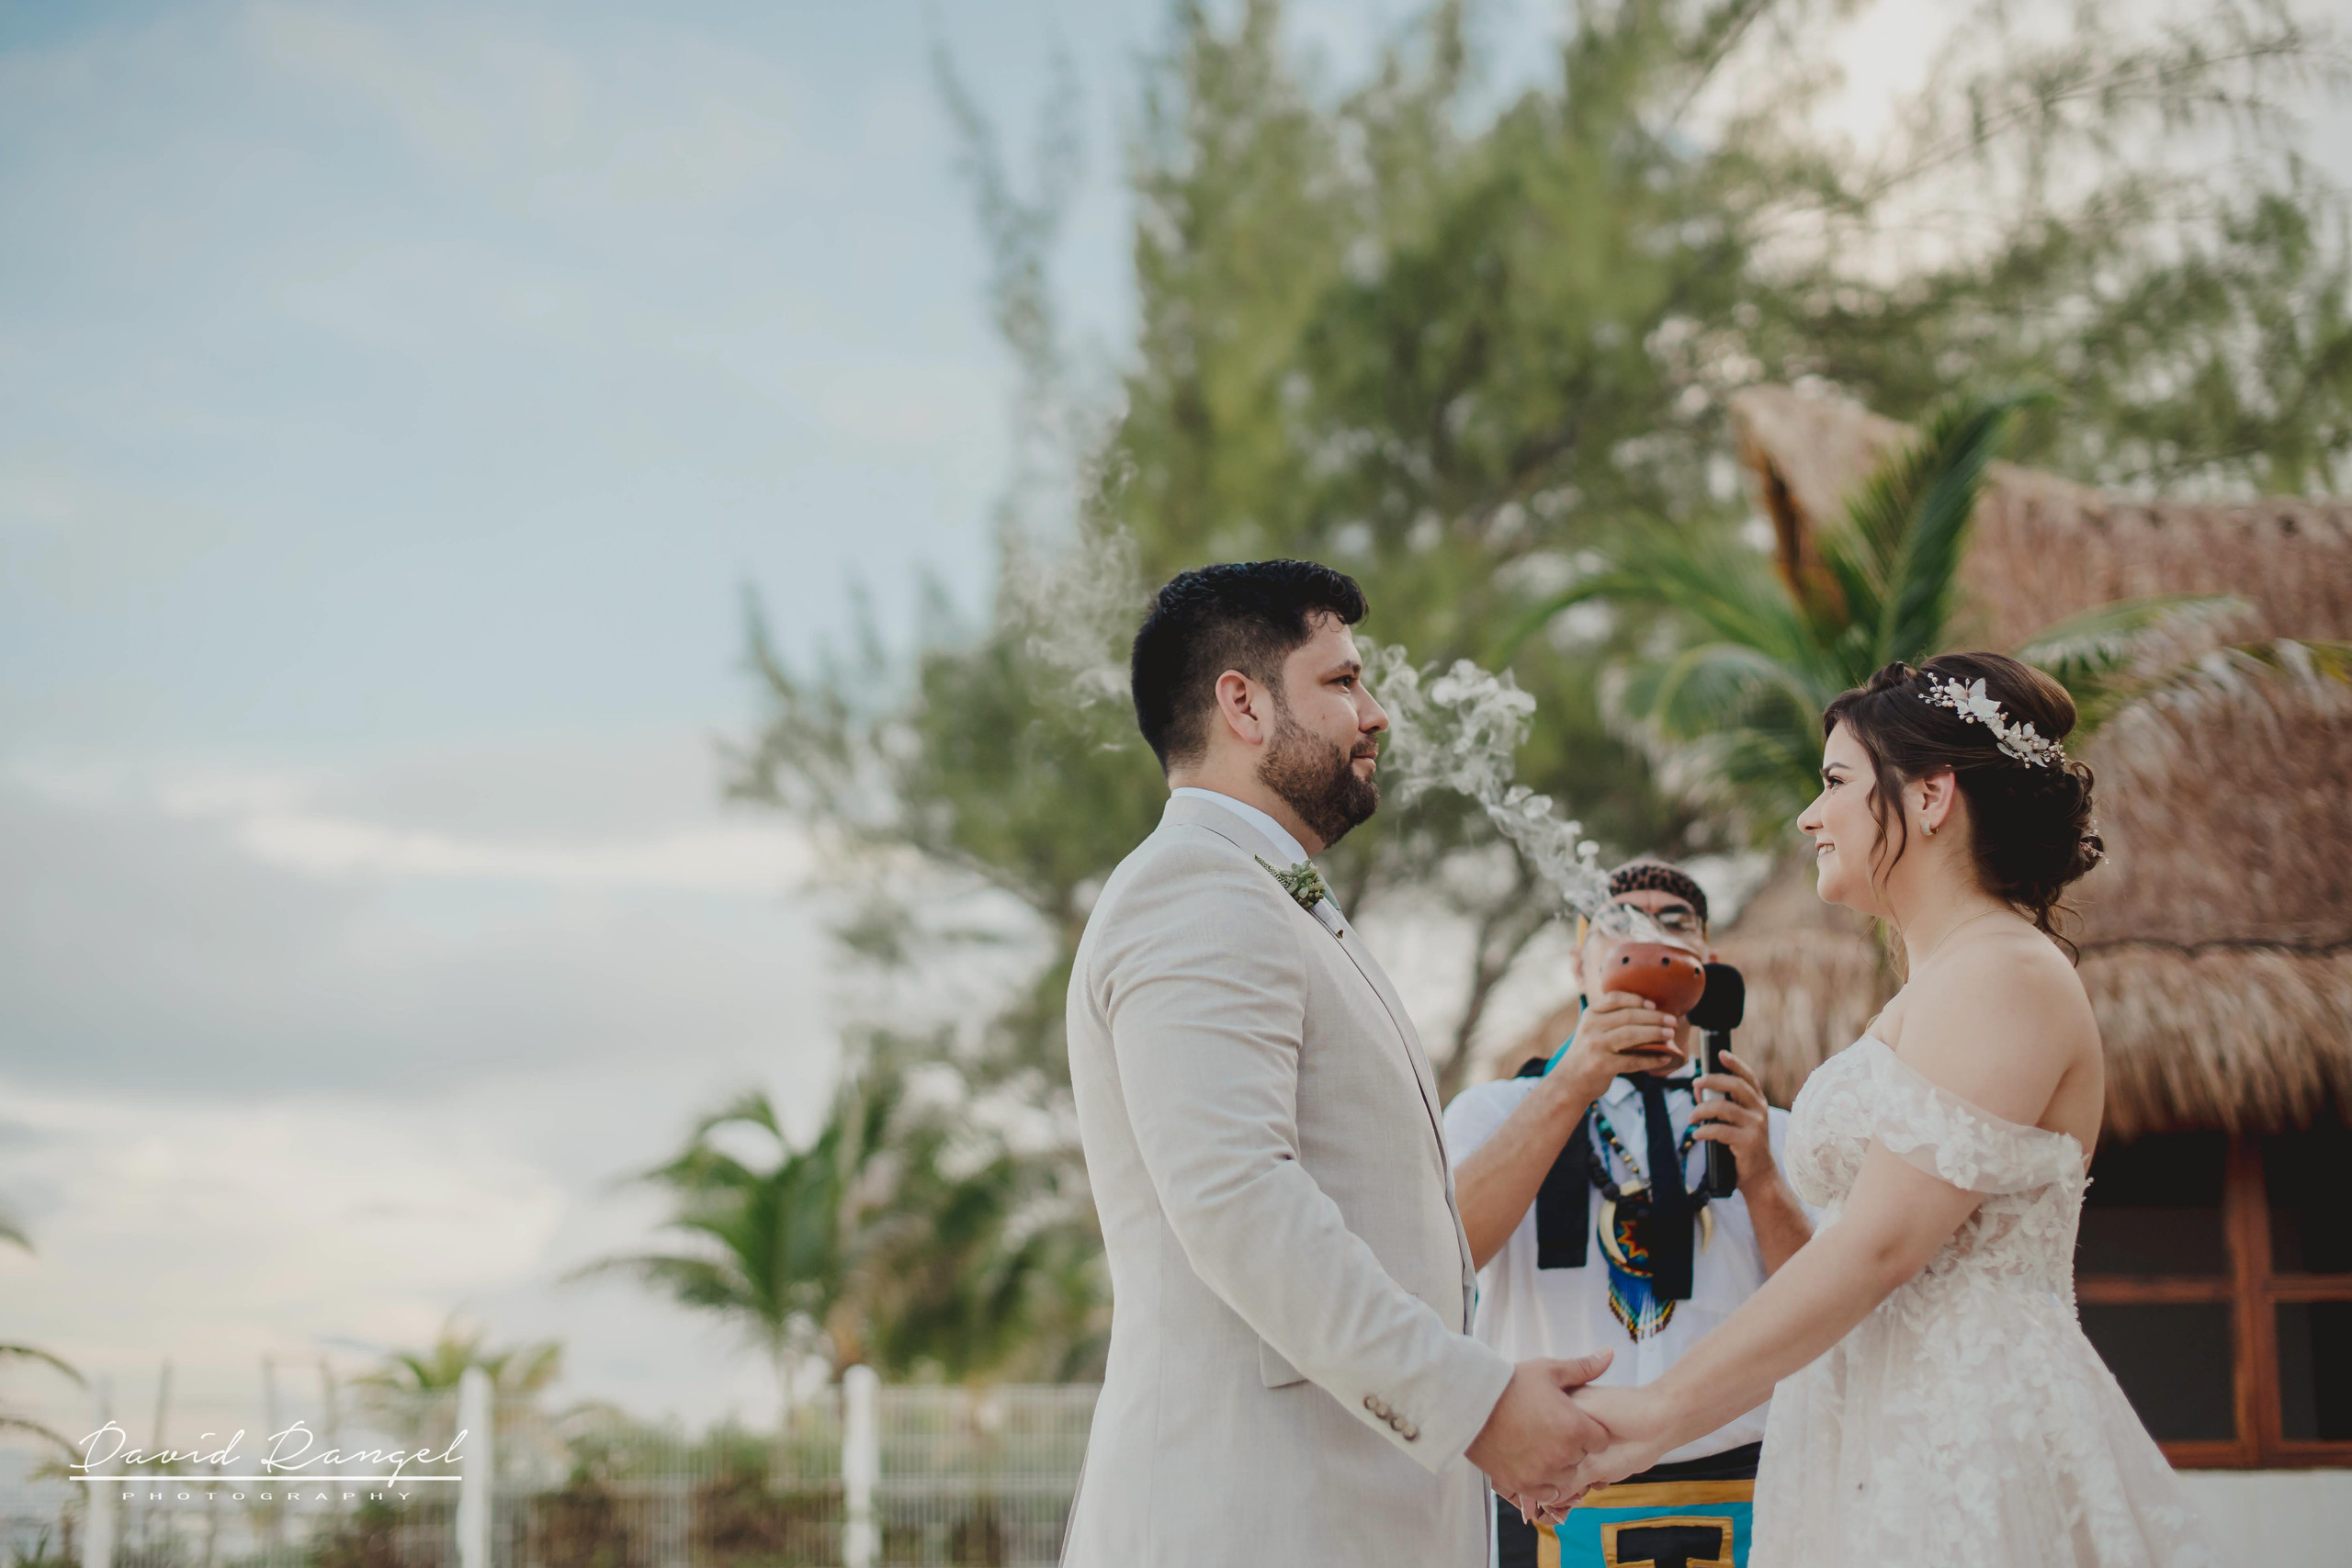 groom+bride+wedding+ceremony+dress+villa+chenera+isla+blanca+costa+mujeres+garden+beach+chaman+traditional+mayan+wedding